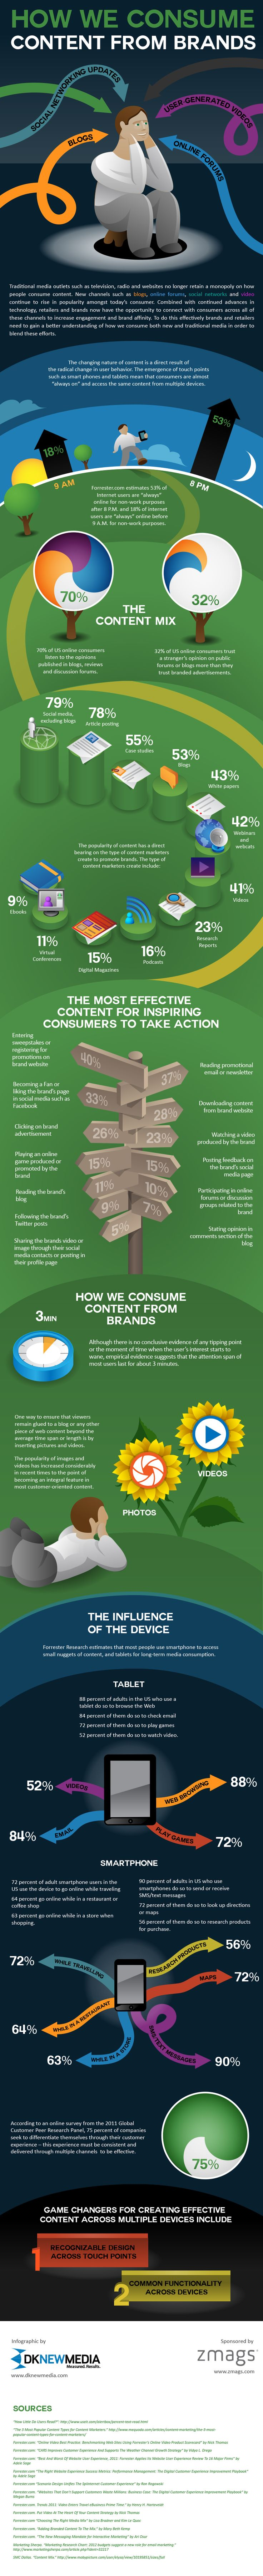 How Do We Consume Content From Brands? #INFOGRAPHIC